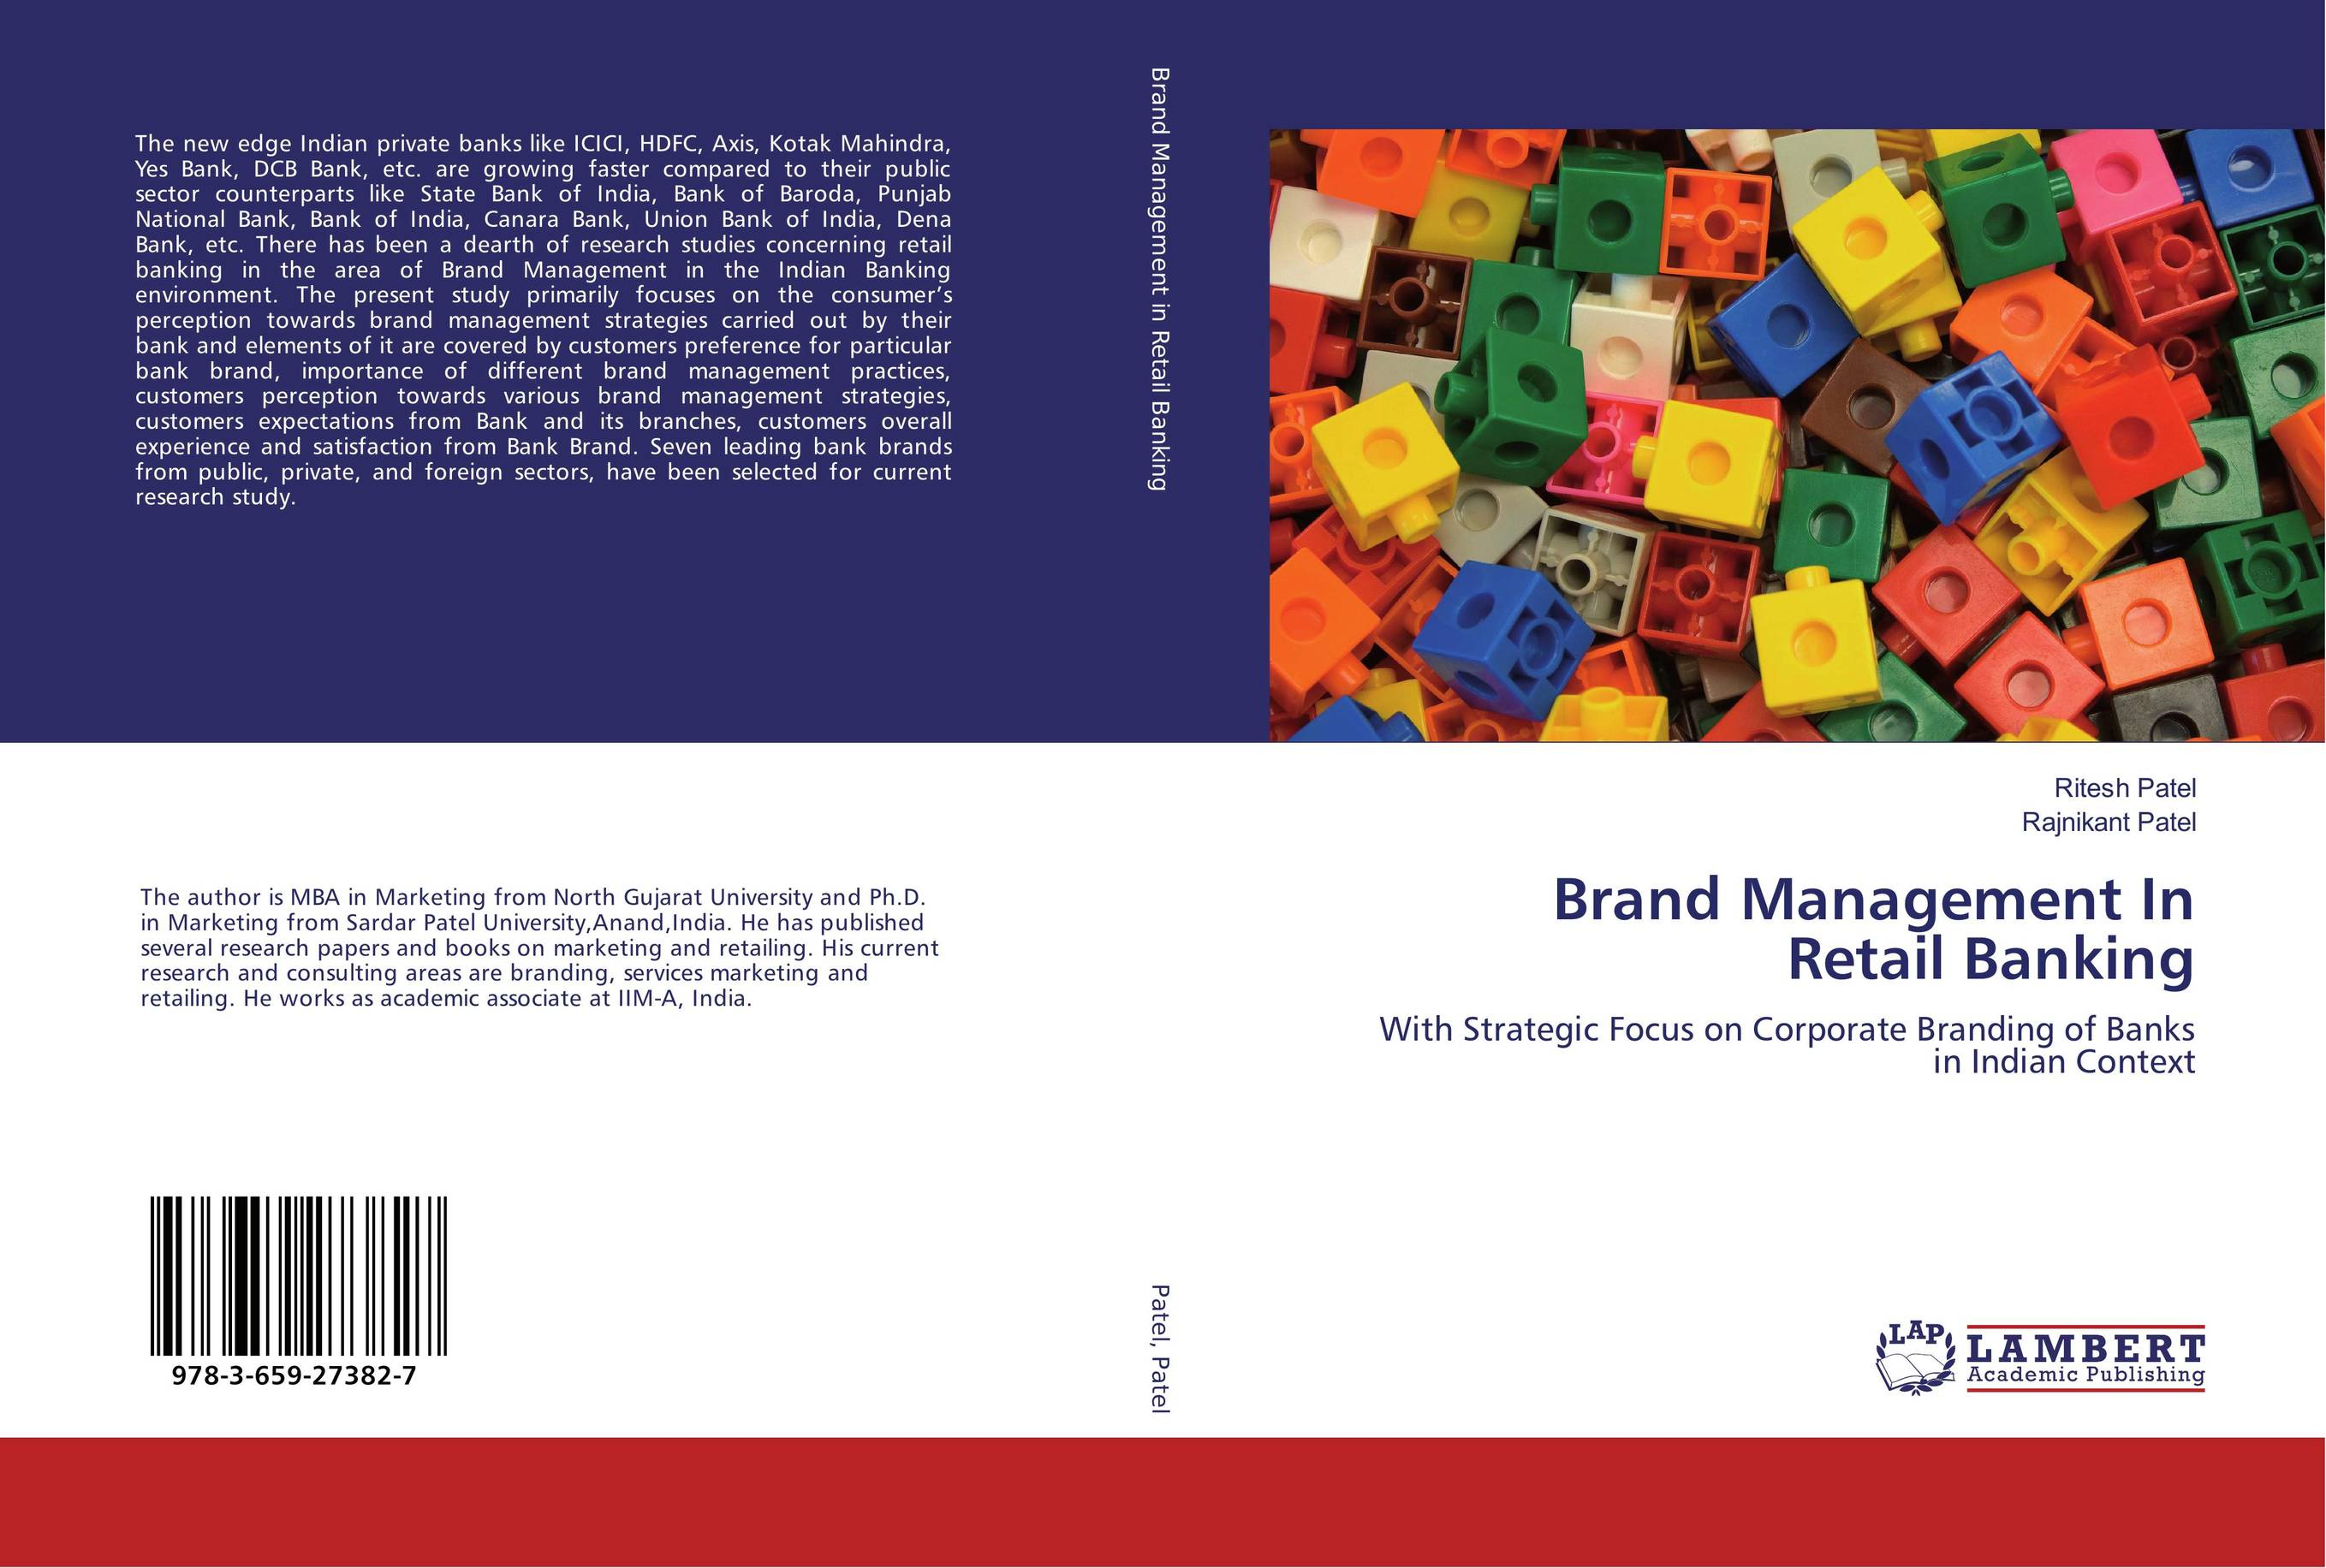 research paper on retail banking Retail banking is a key component of banking industry, offering mass-market banking services to natural persons and small businesses retail banking differs from private banking in two aspects first, retail banking covers almost all natural persons, not only high-net-worth individuals.